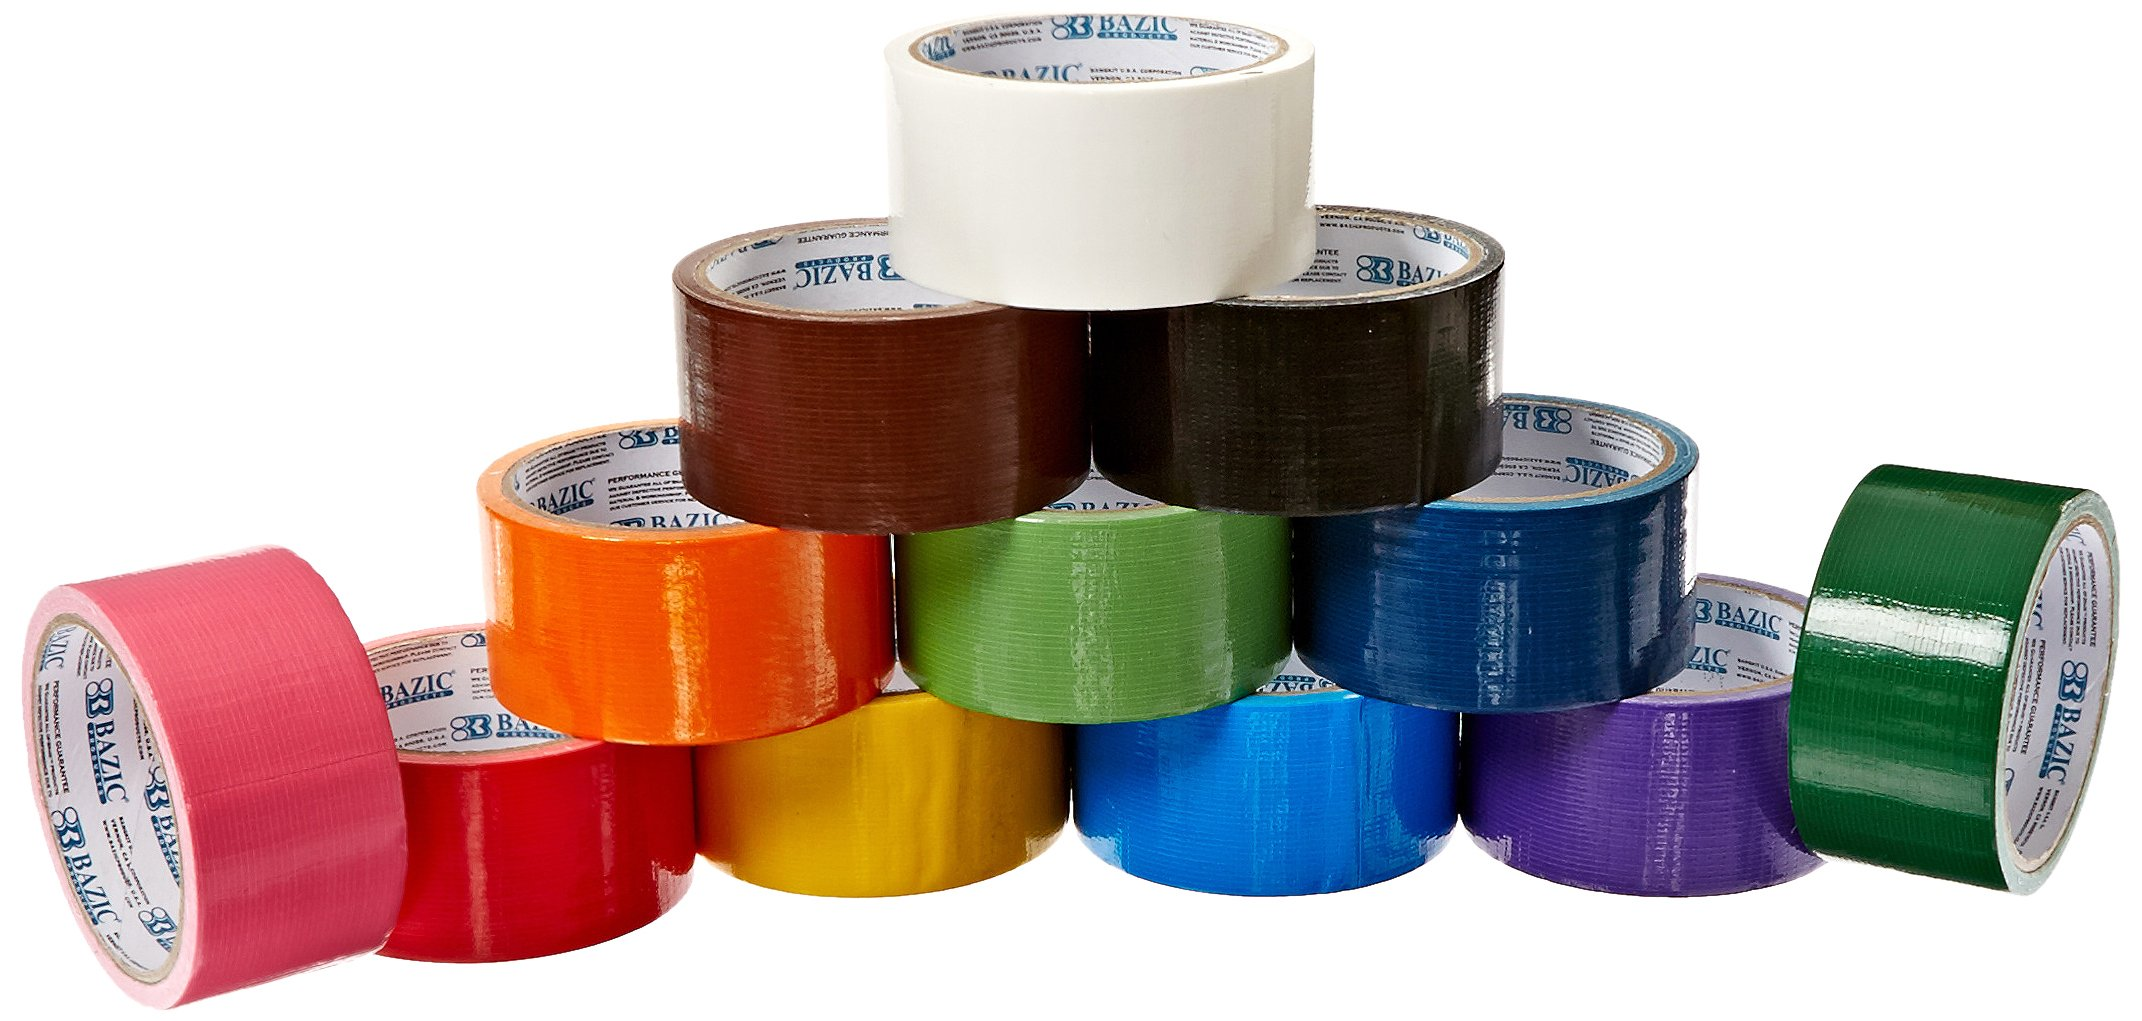 24 Roll Variety Pack Solid Colors (brights and regular colors) of All Purpose Duct Tape. Brights Include: green, blue, orange, purple, yellow and pink. Regular colors include: brown, white, black, green, red, and blue. All solid color rolls are 1.89x 10 y